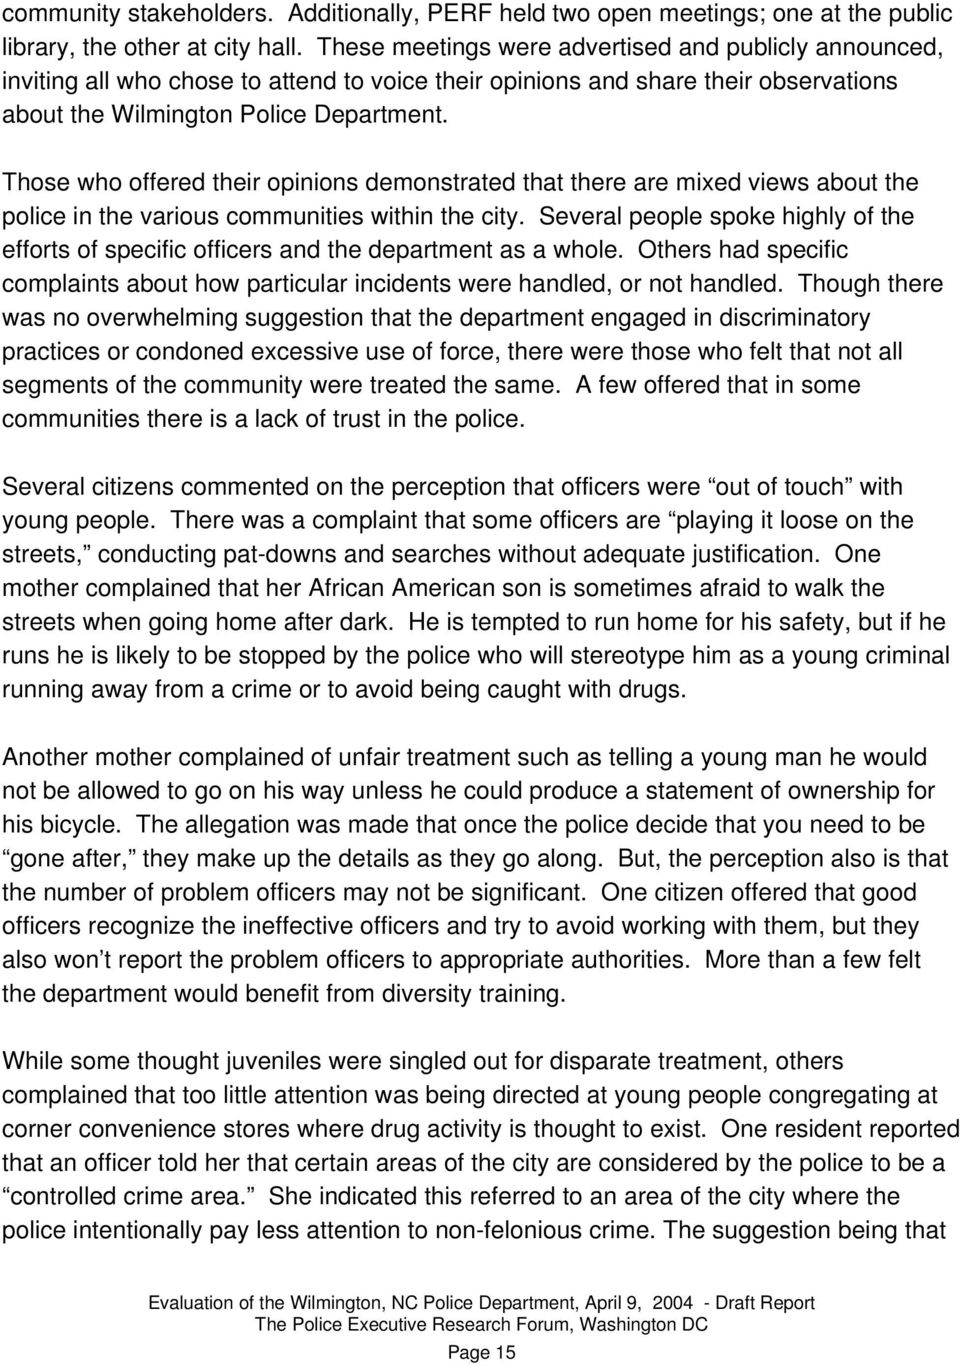 EVALUATION OF THE WILMINGTON, NORTH CAROLINA POLICE